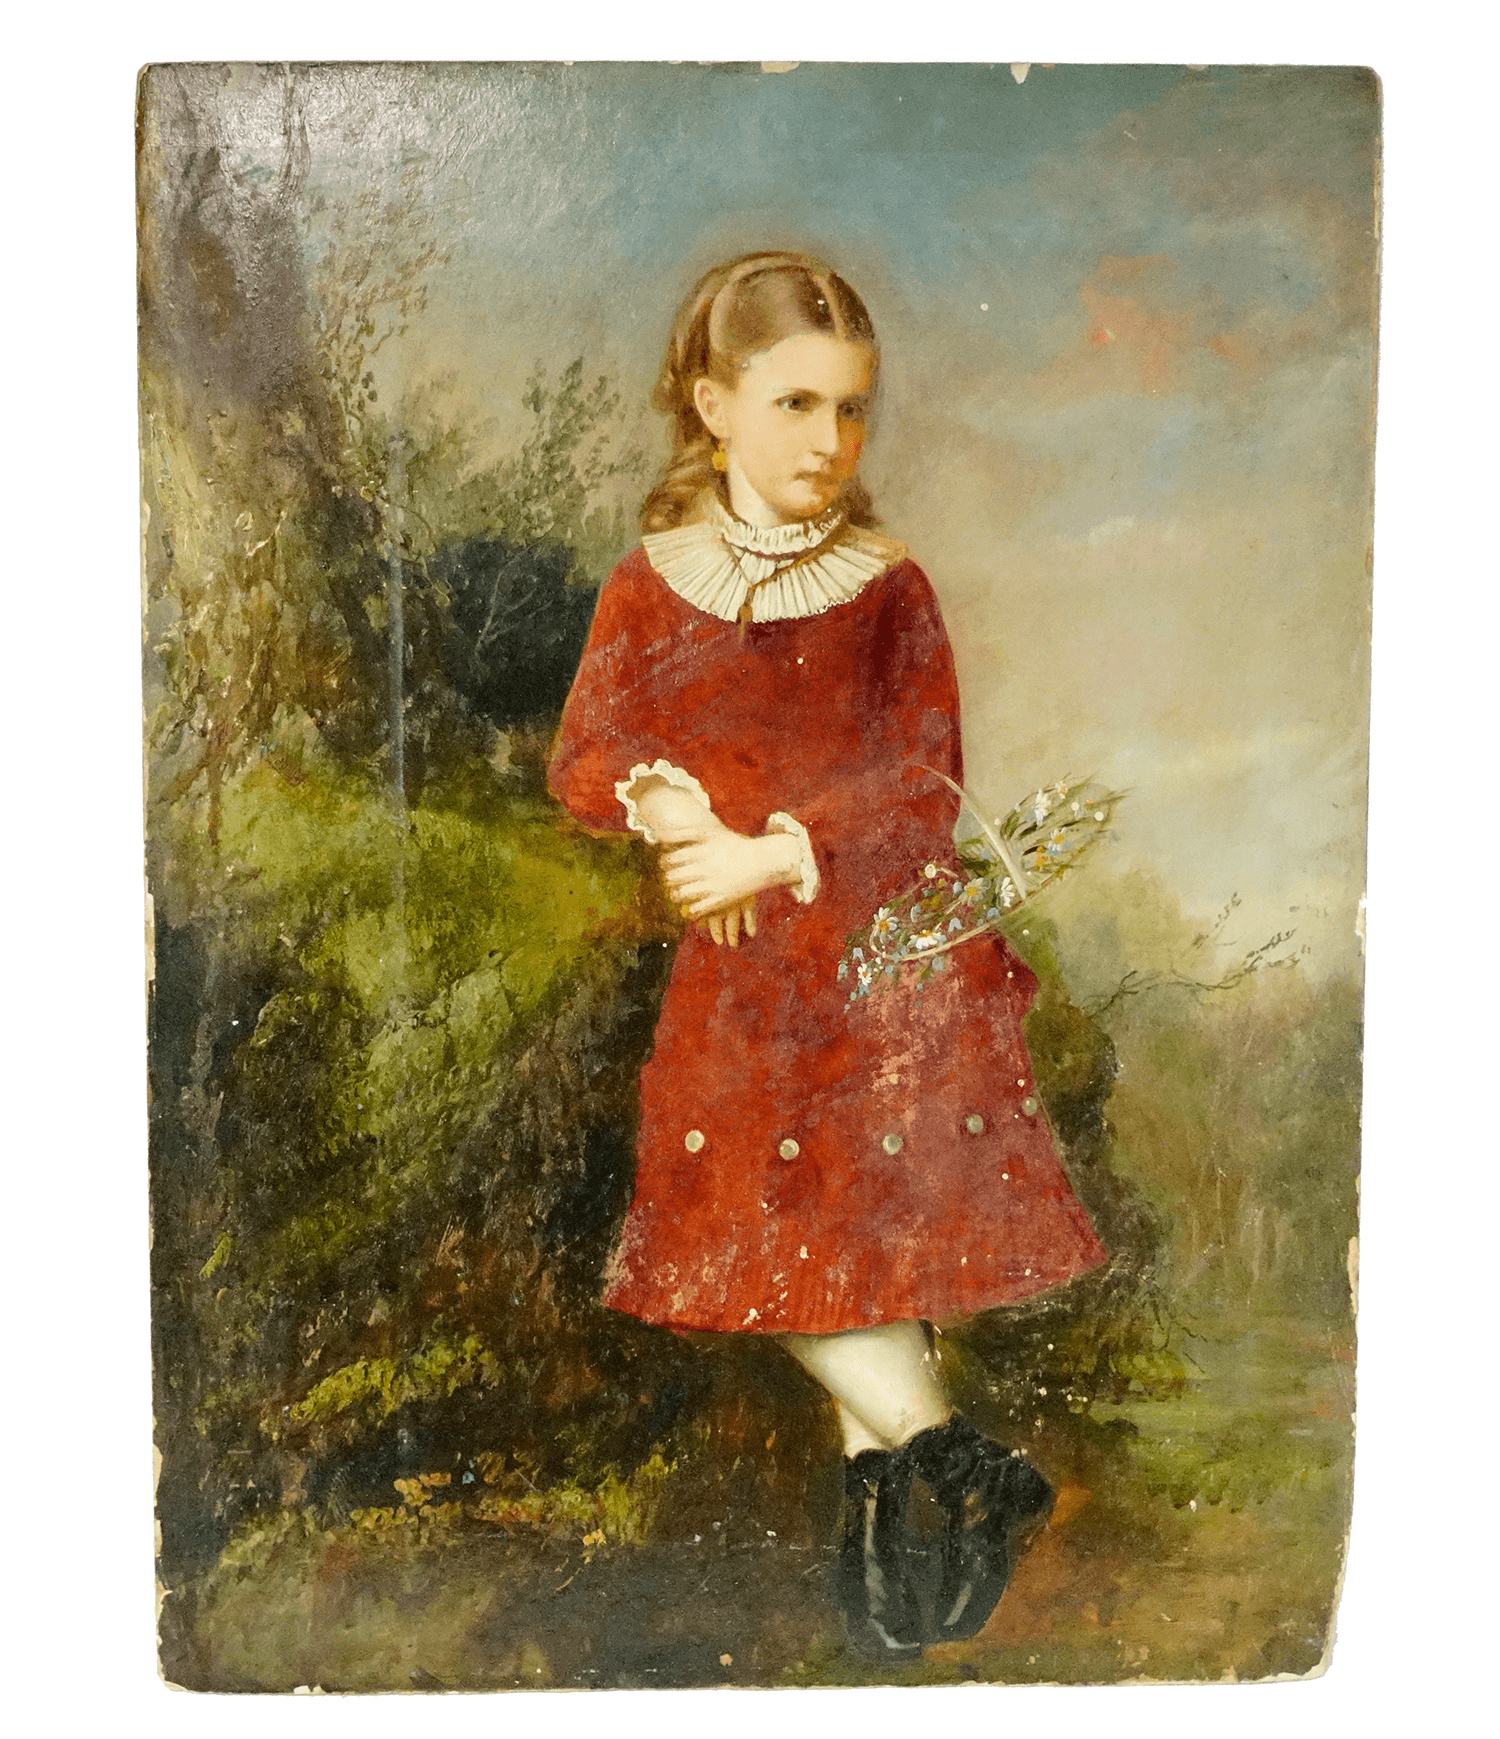 Unidentified European Girl with Flower Basket Painting